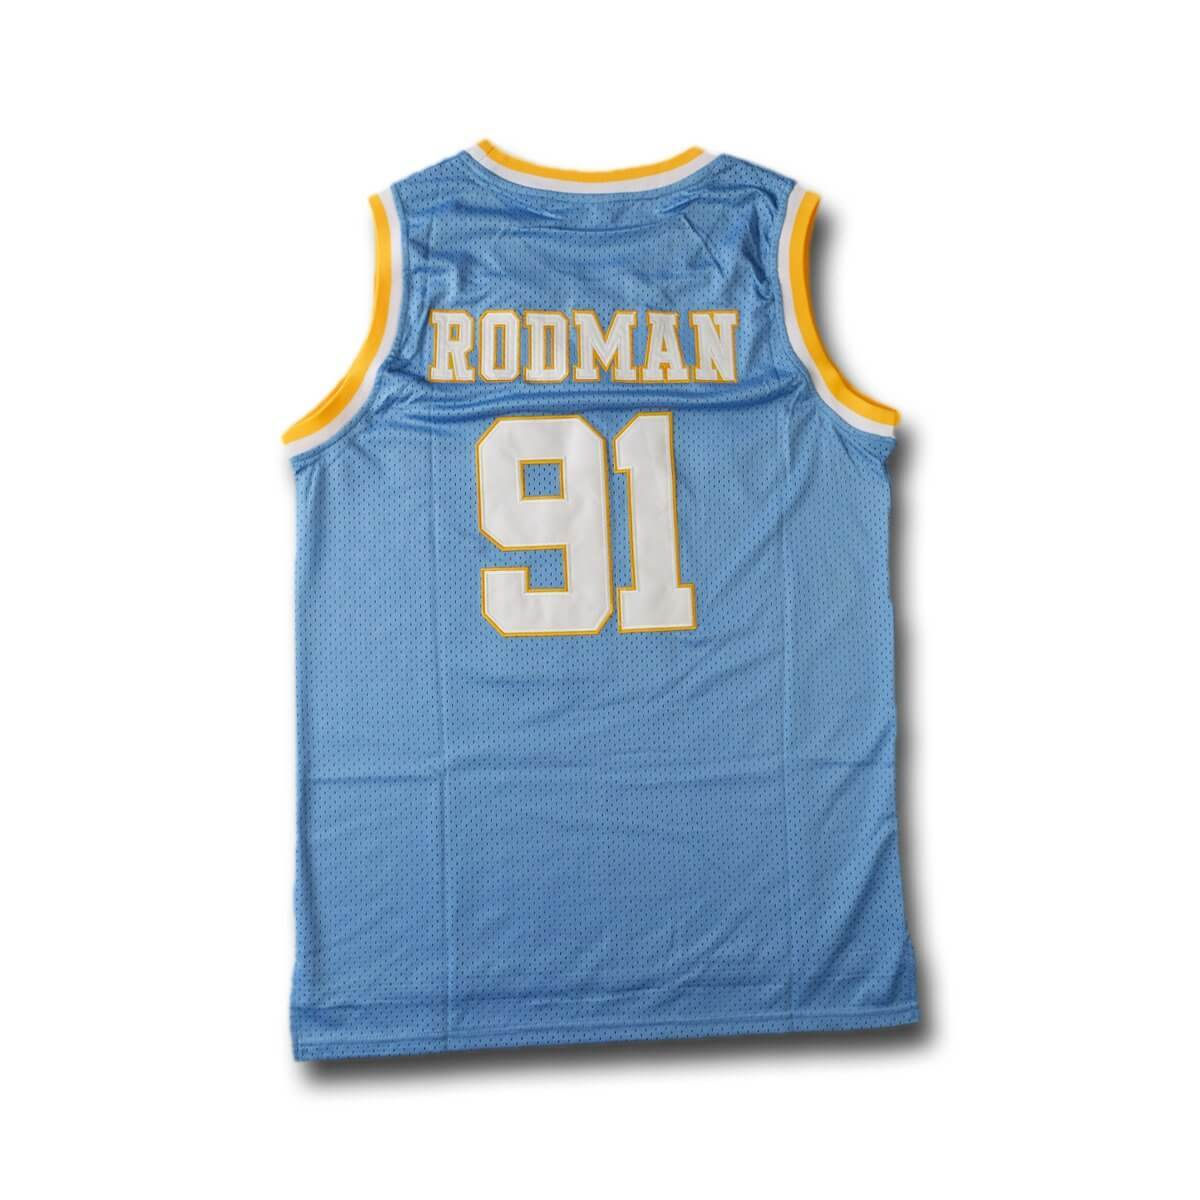 Oak Cliff 91 Rodman Basketball Jersey